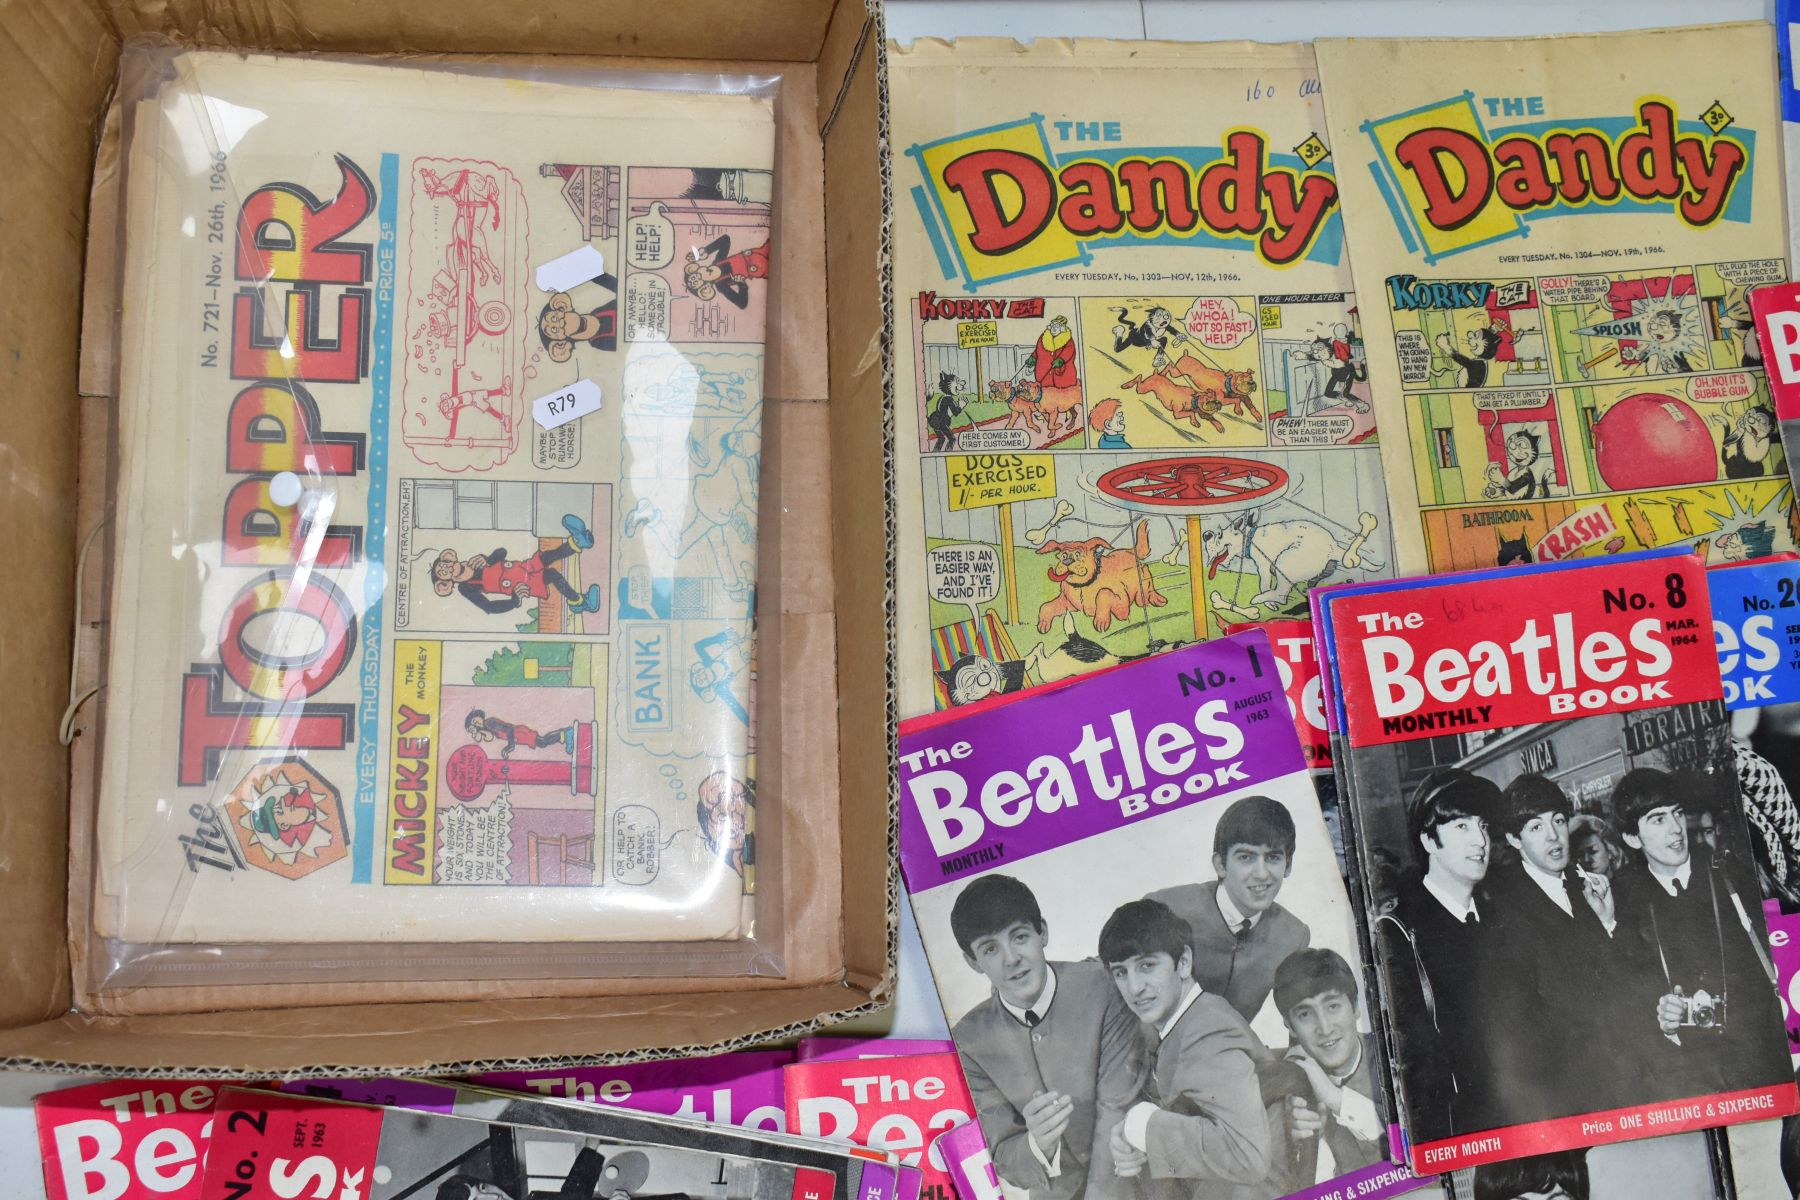 A QUANTITY OF THE BEATLES MONTHLY BOOK, to include No's 1, 2, 4-11, 13-19, 21-28, 32-34, 37-40, 42 & - Image 2 of 2